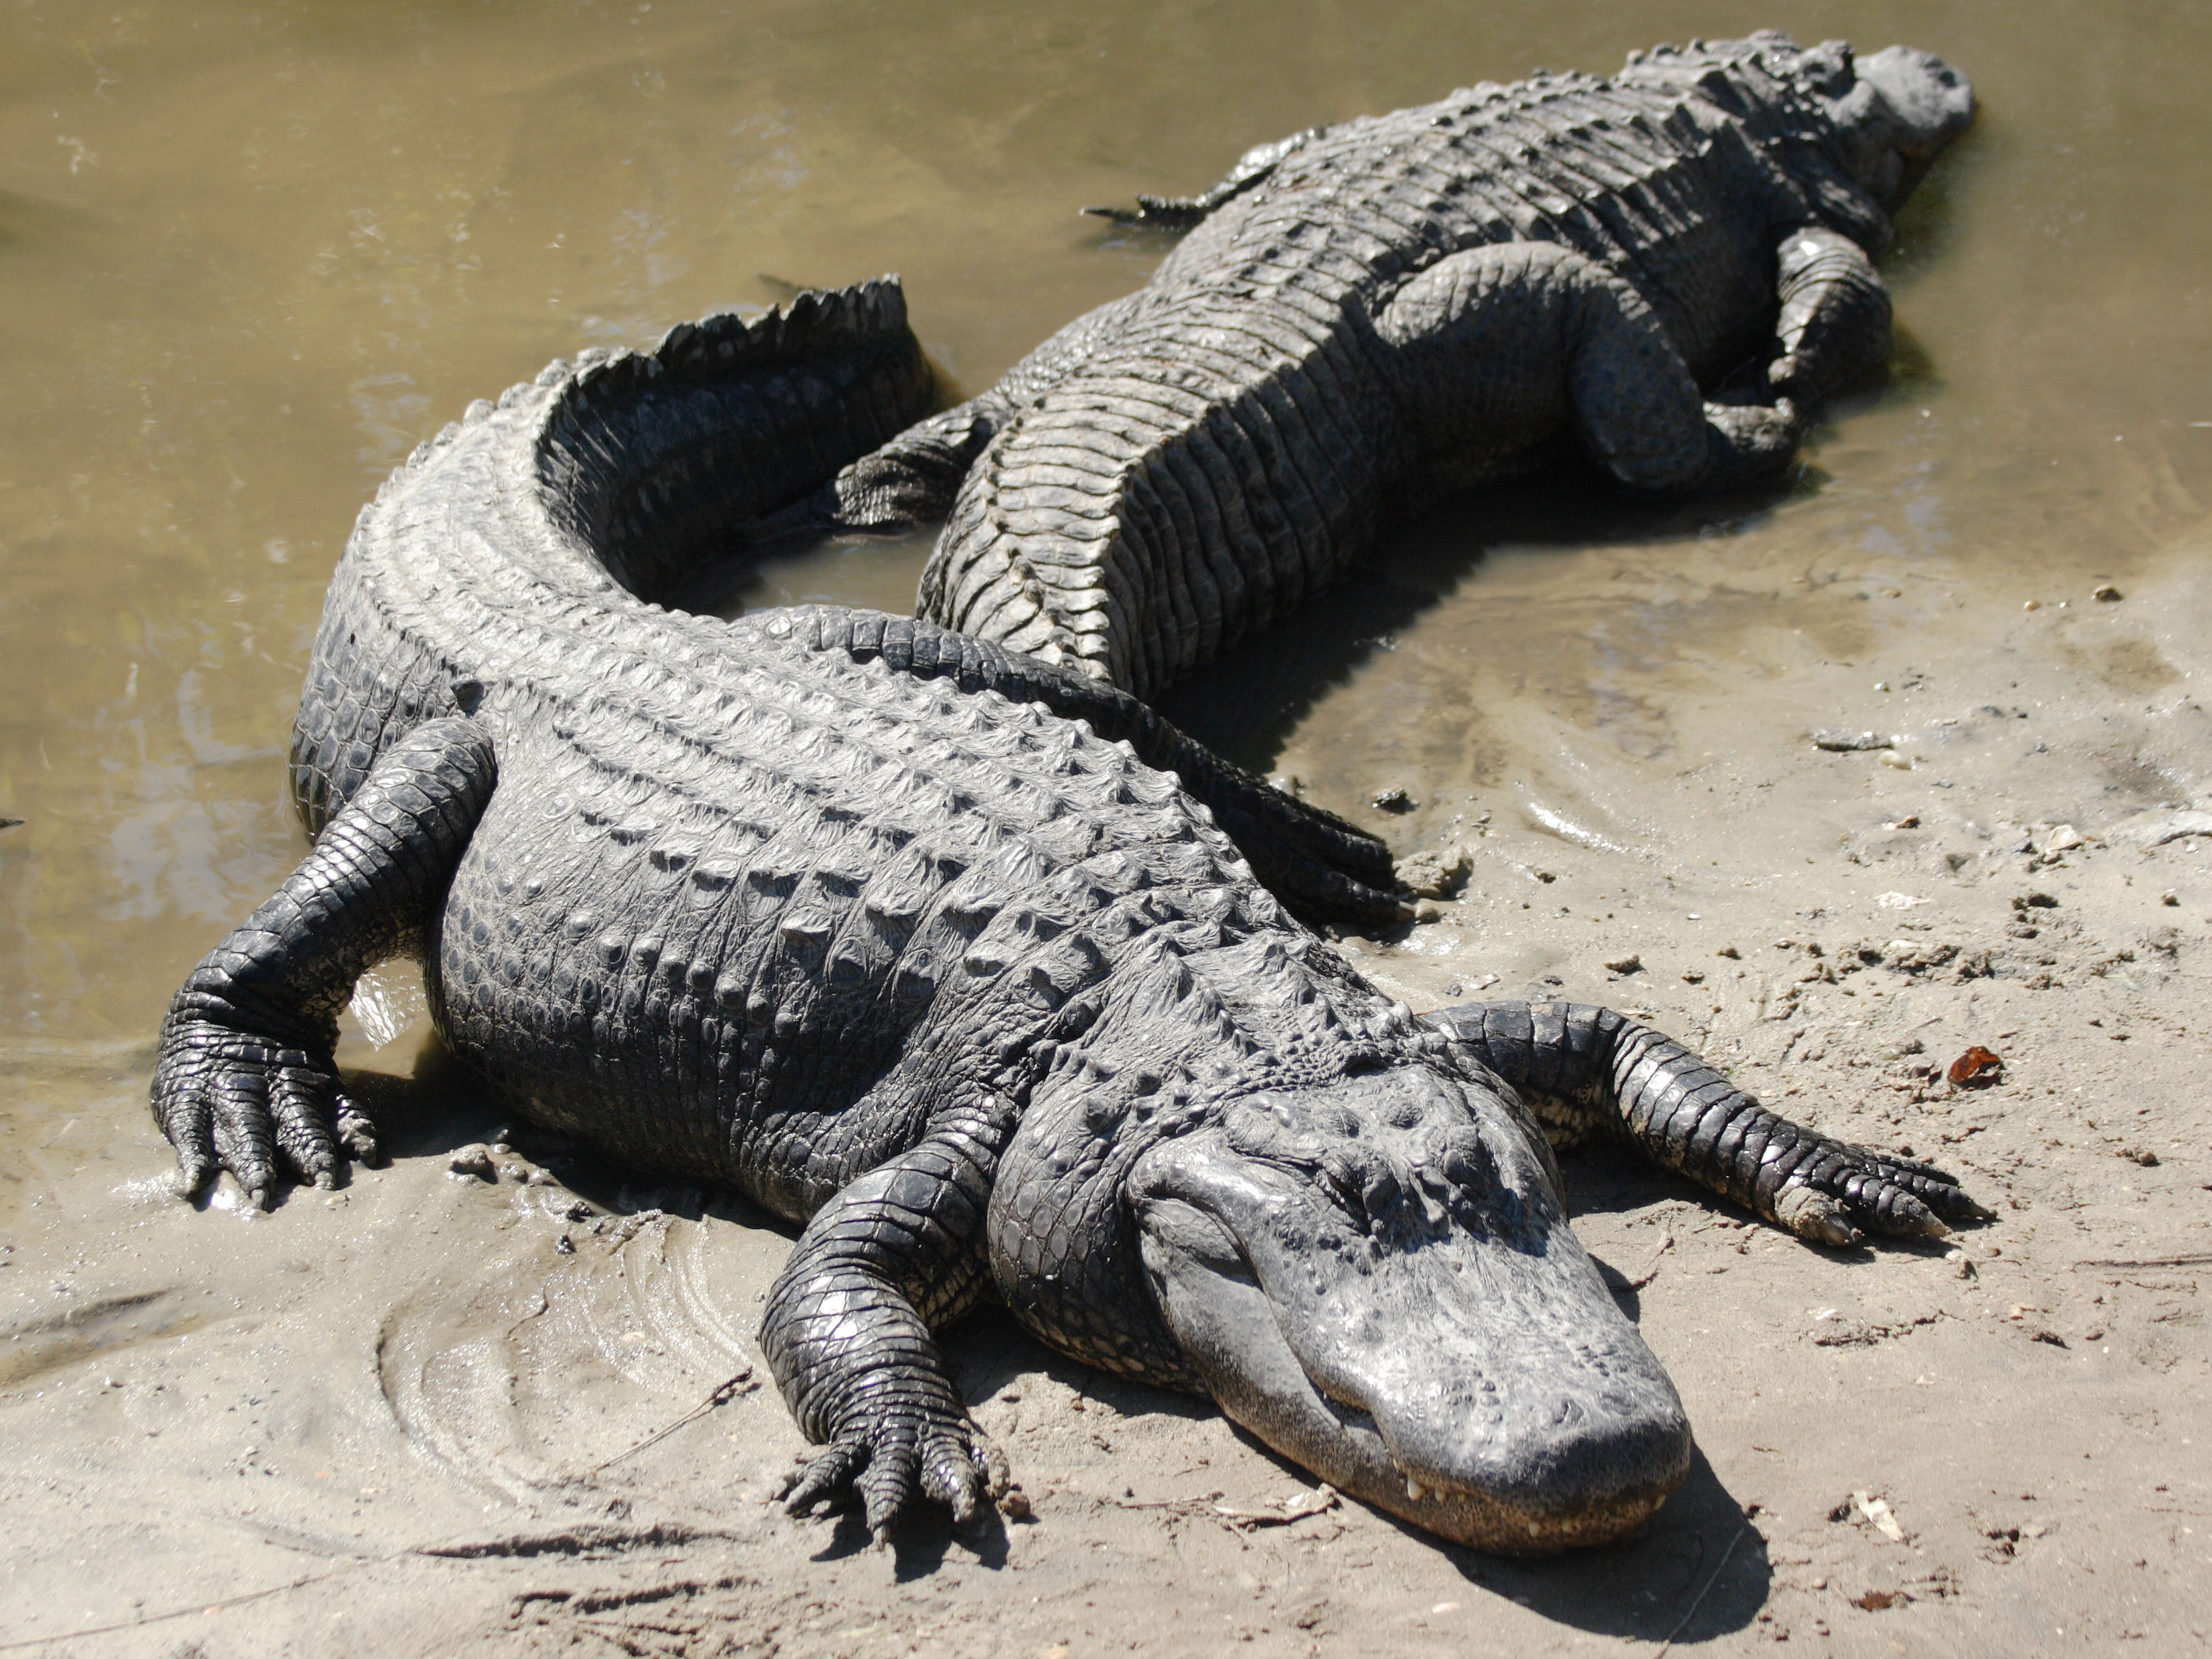 Alligator - Wikipedia, la enciclopedia libre